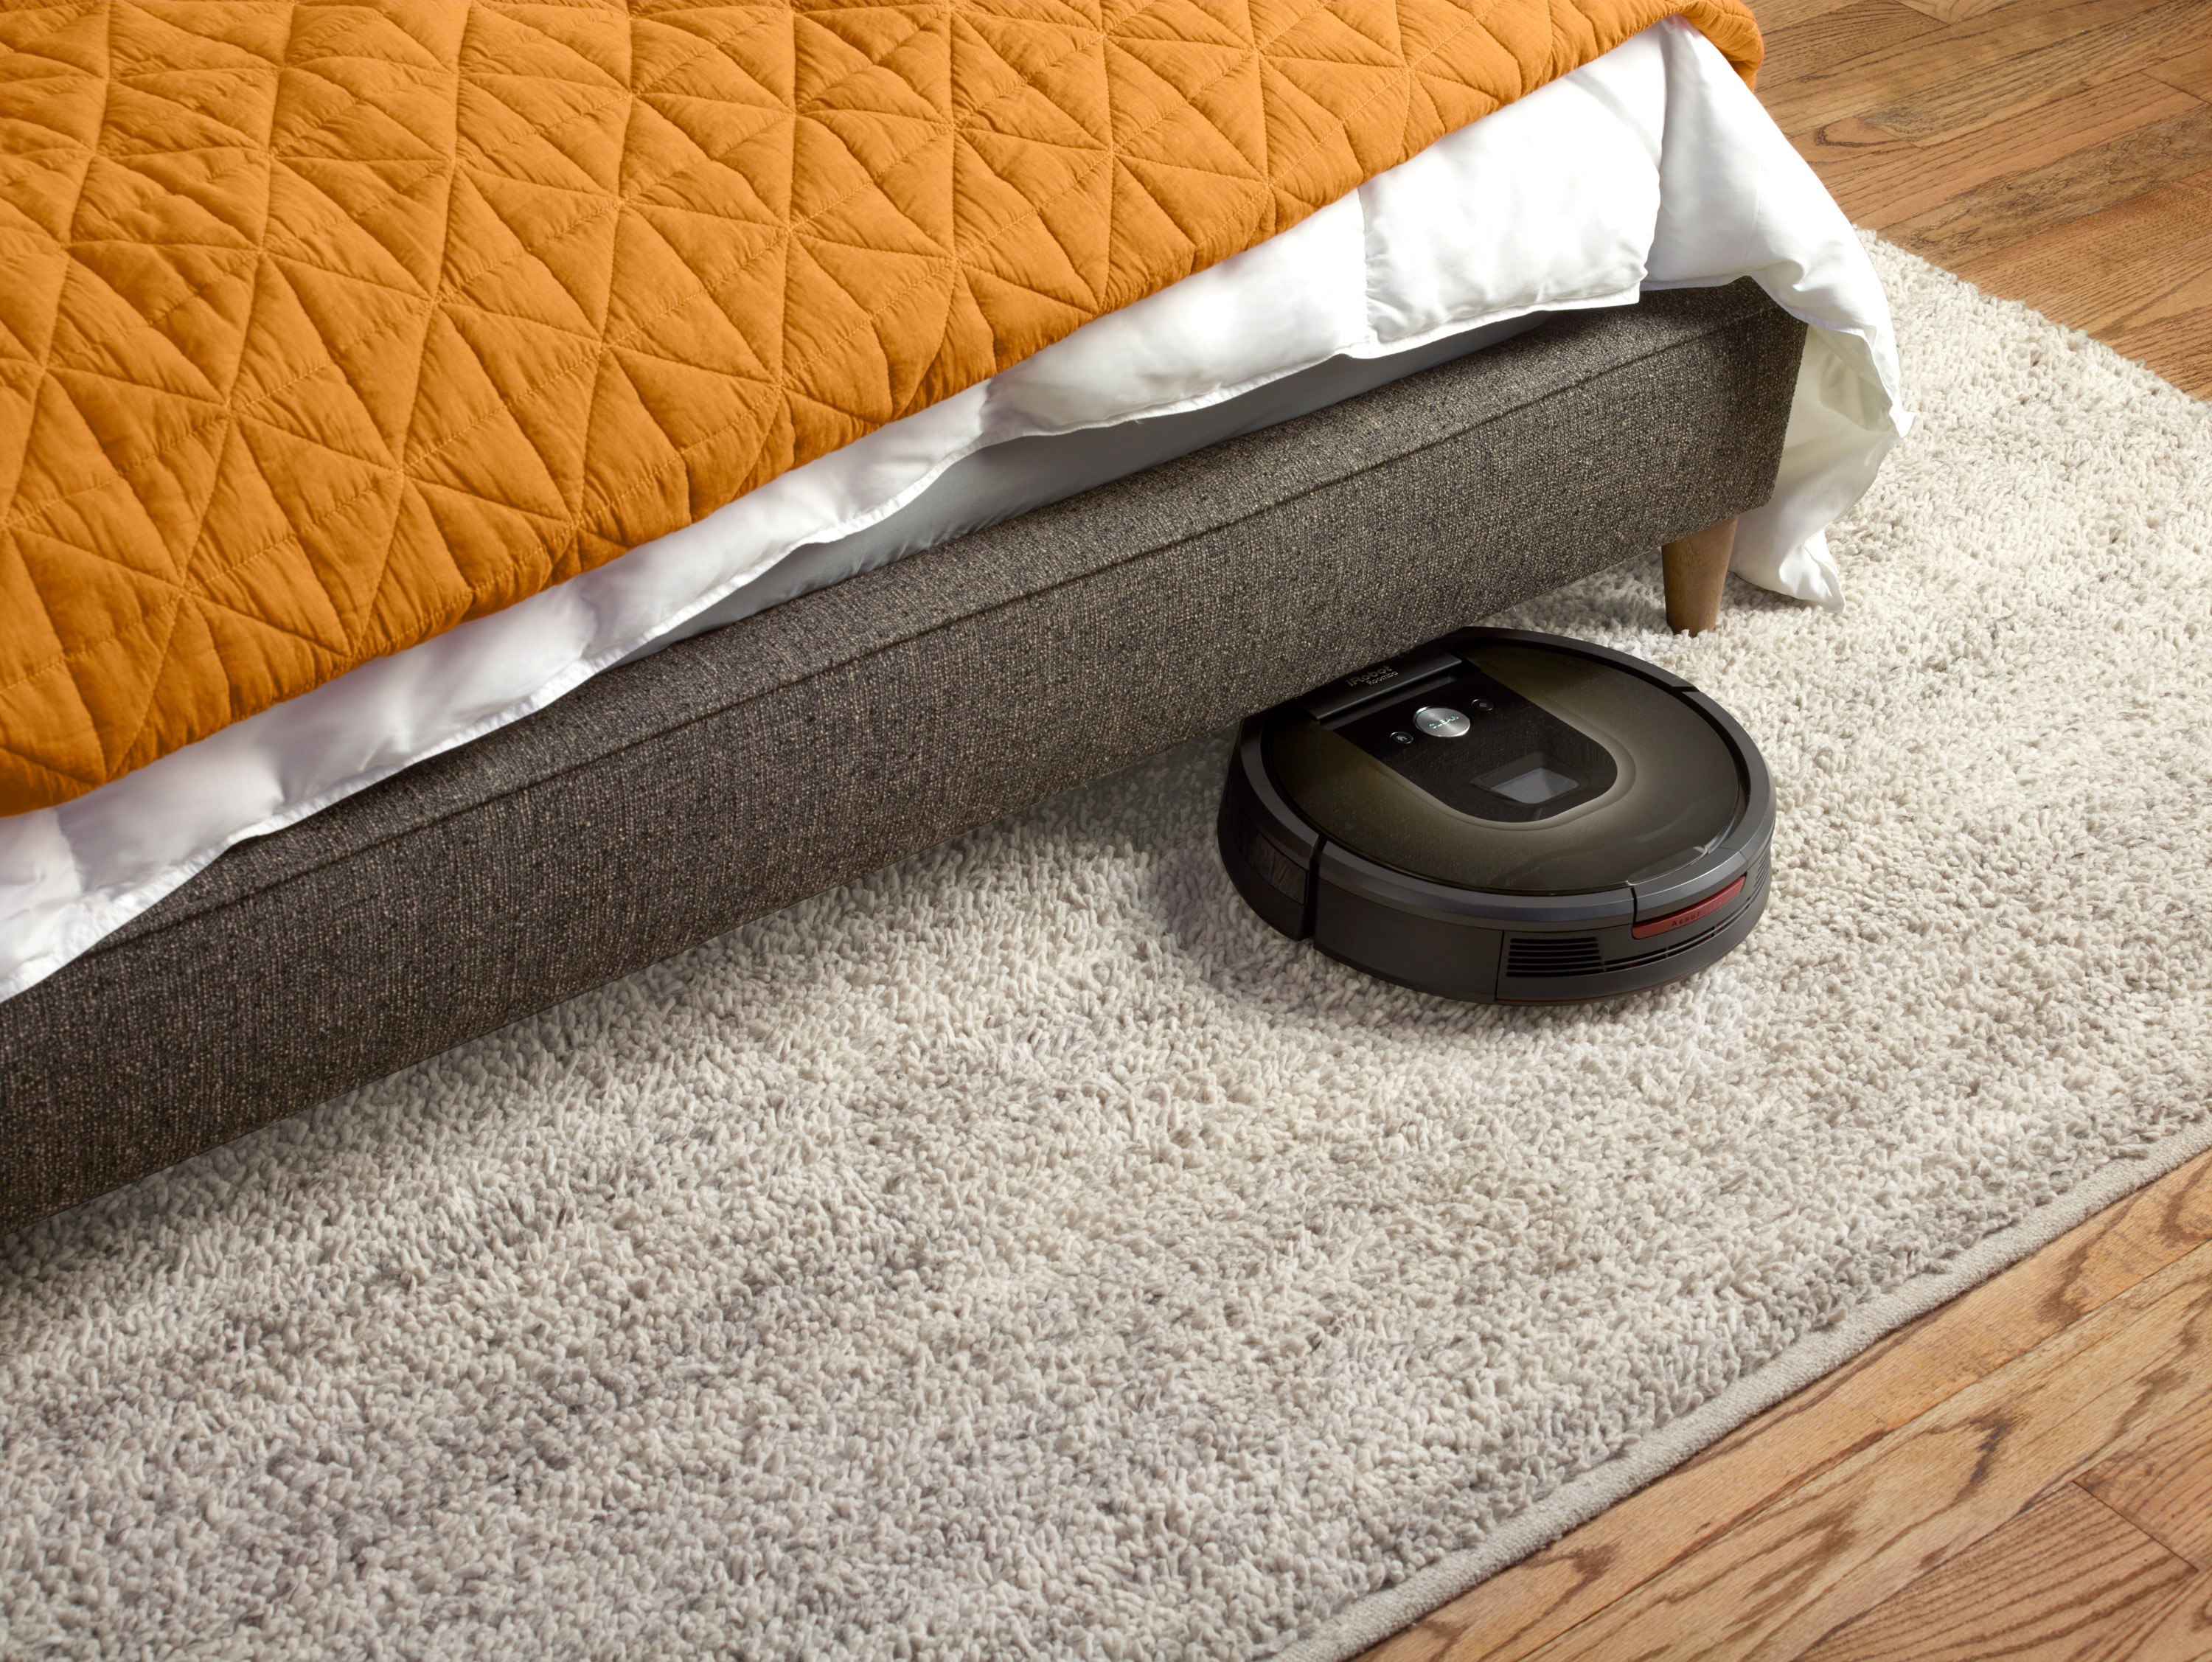 The Roomba 980 is the first  to come with an app that enables starting a vacuuming session remotely.